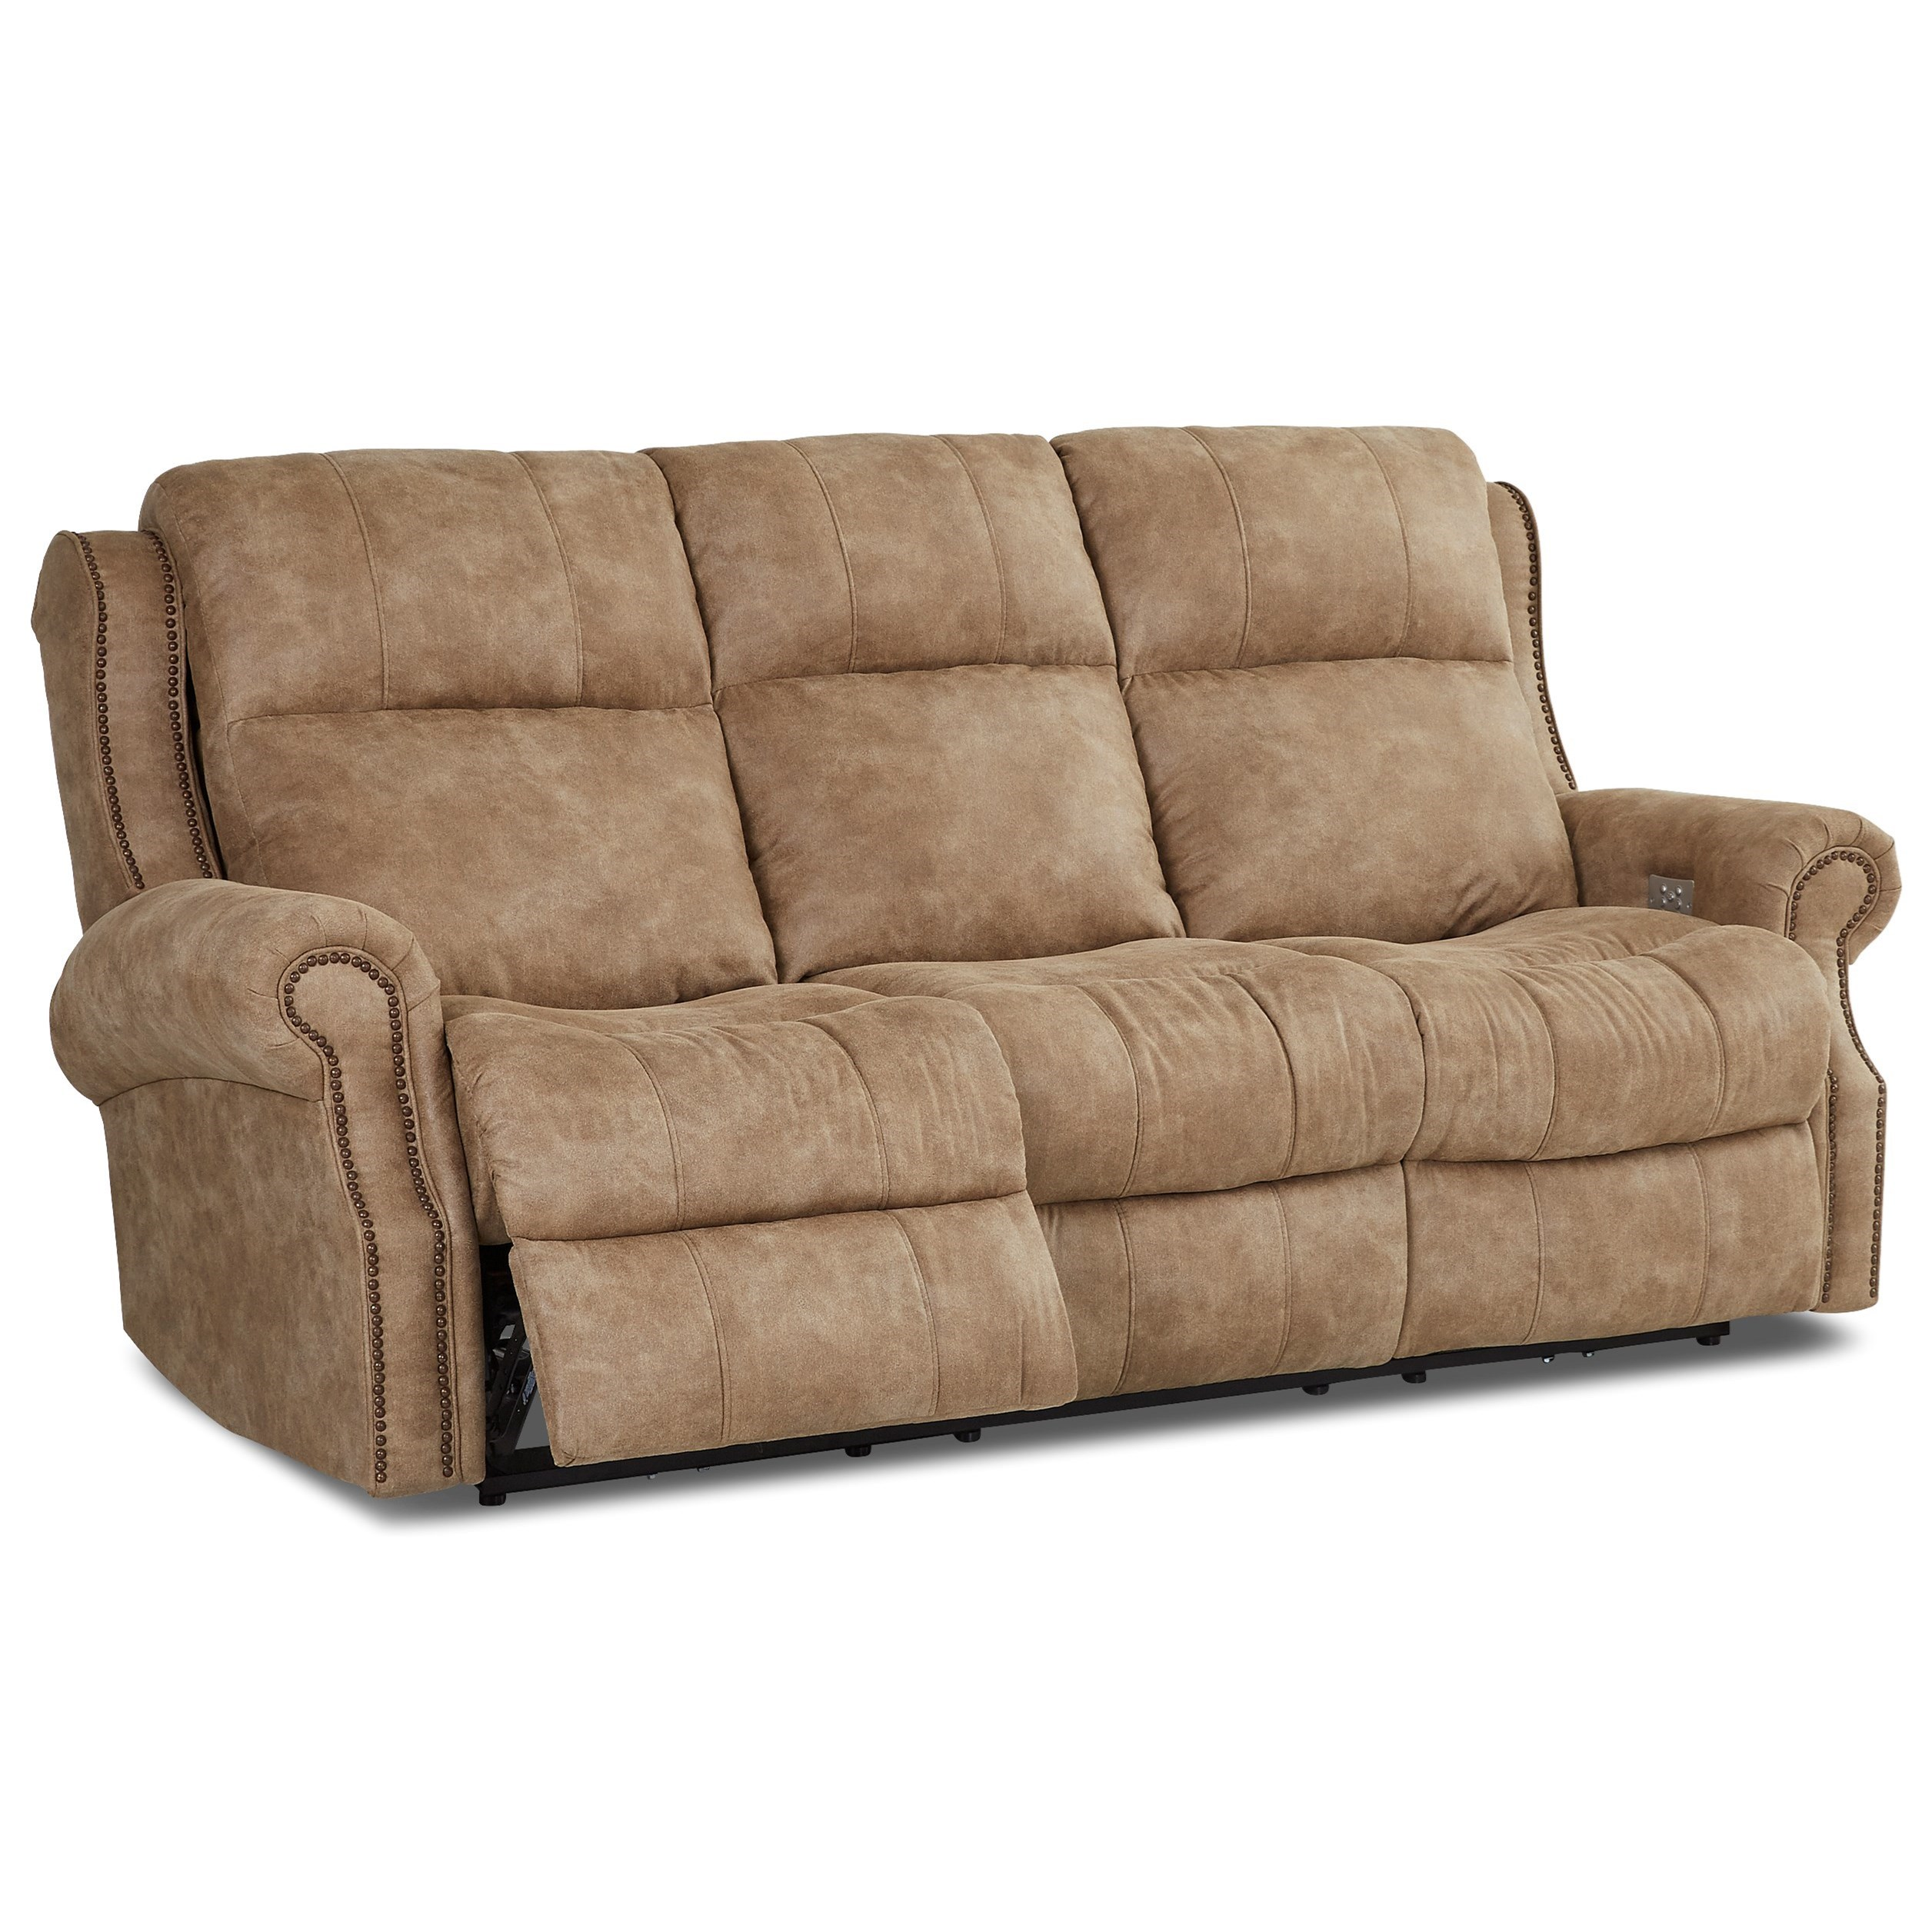 Traditional Power Reclining Sofa with Nailheads and Power Tilt